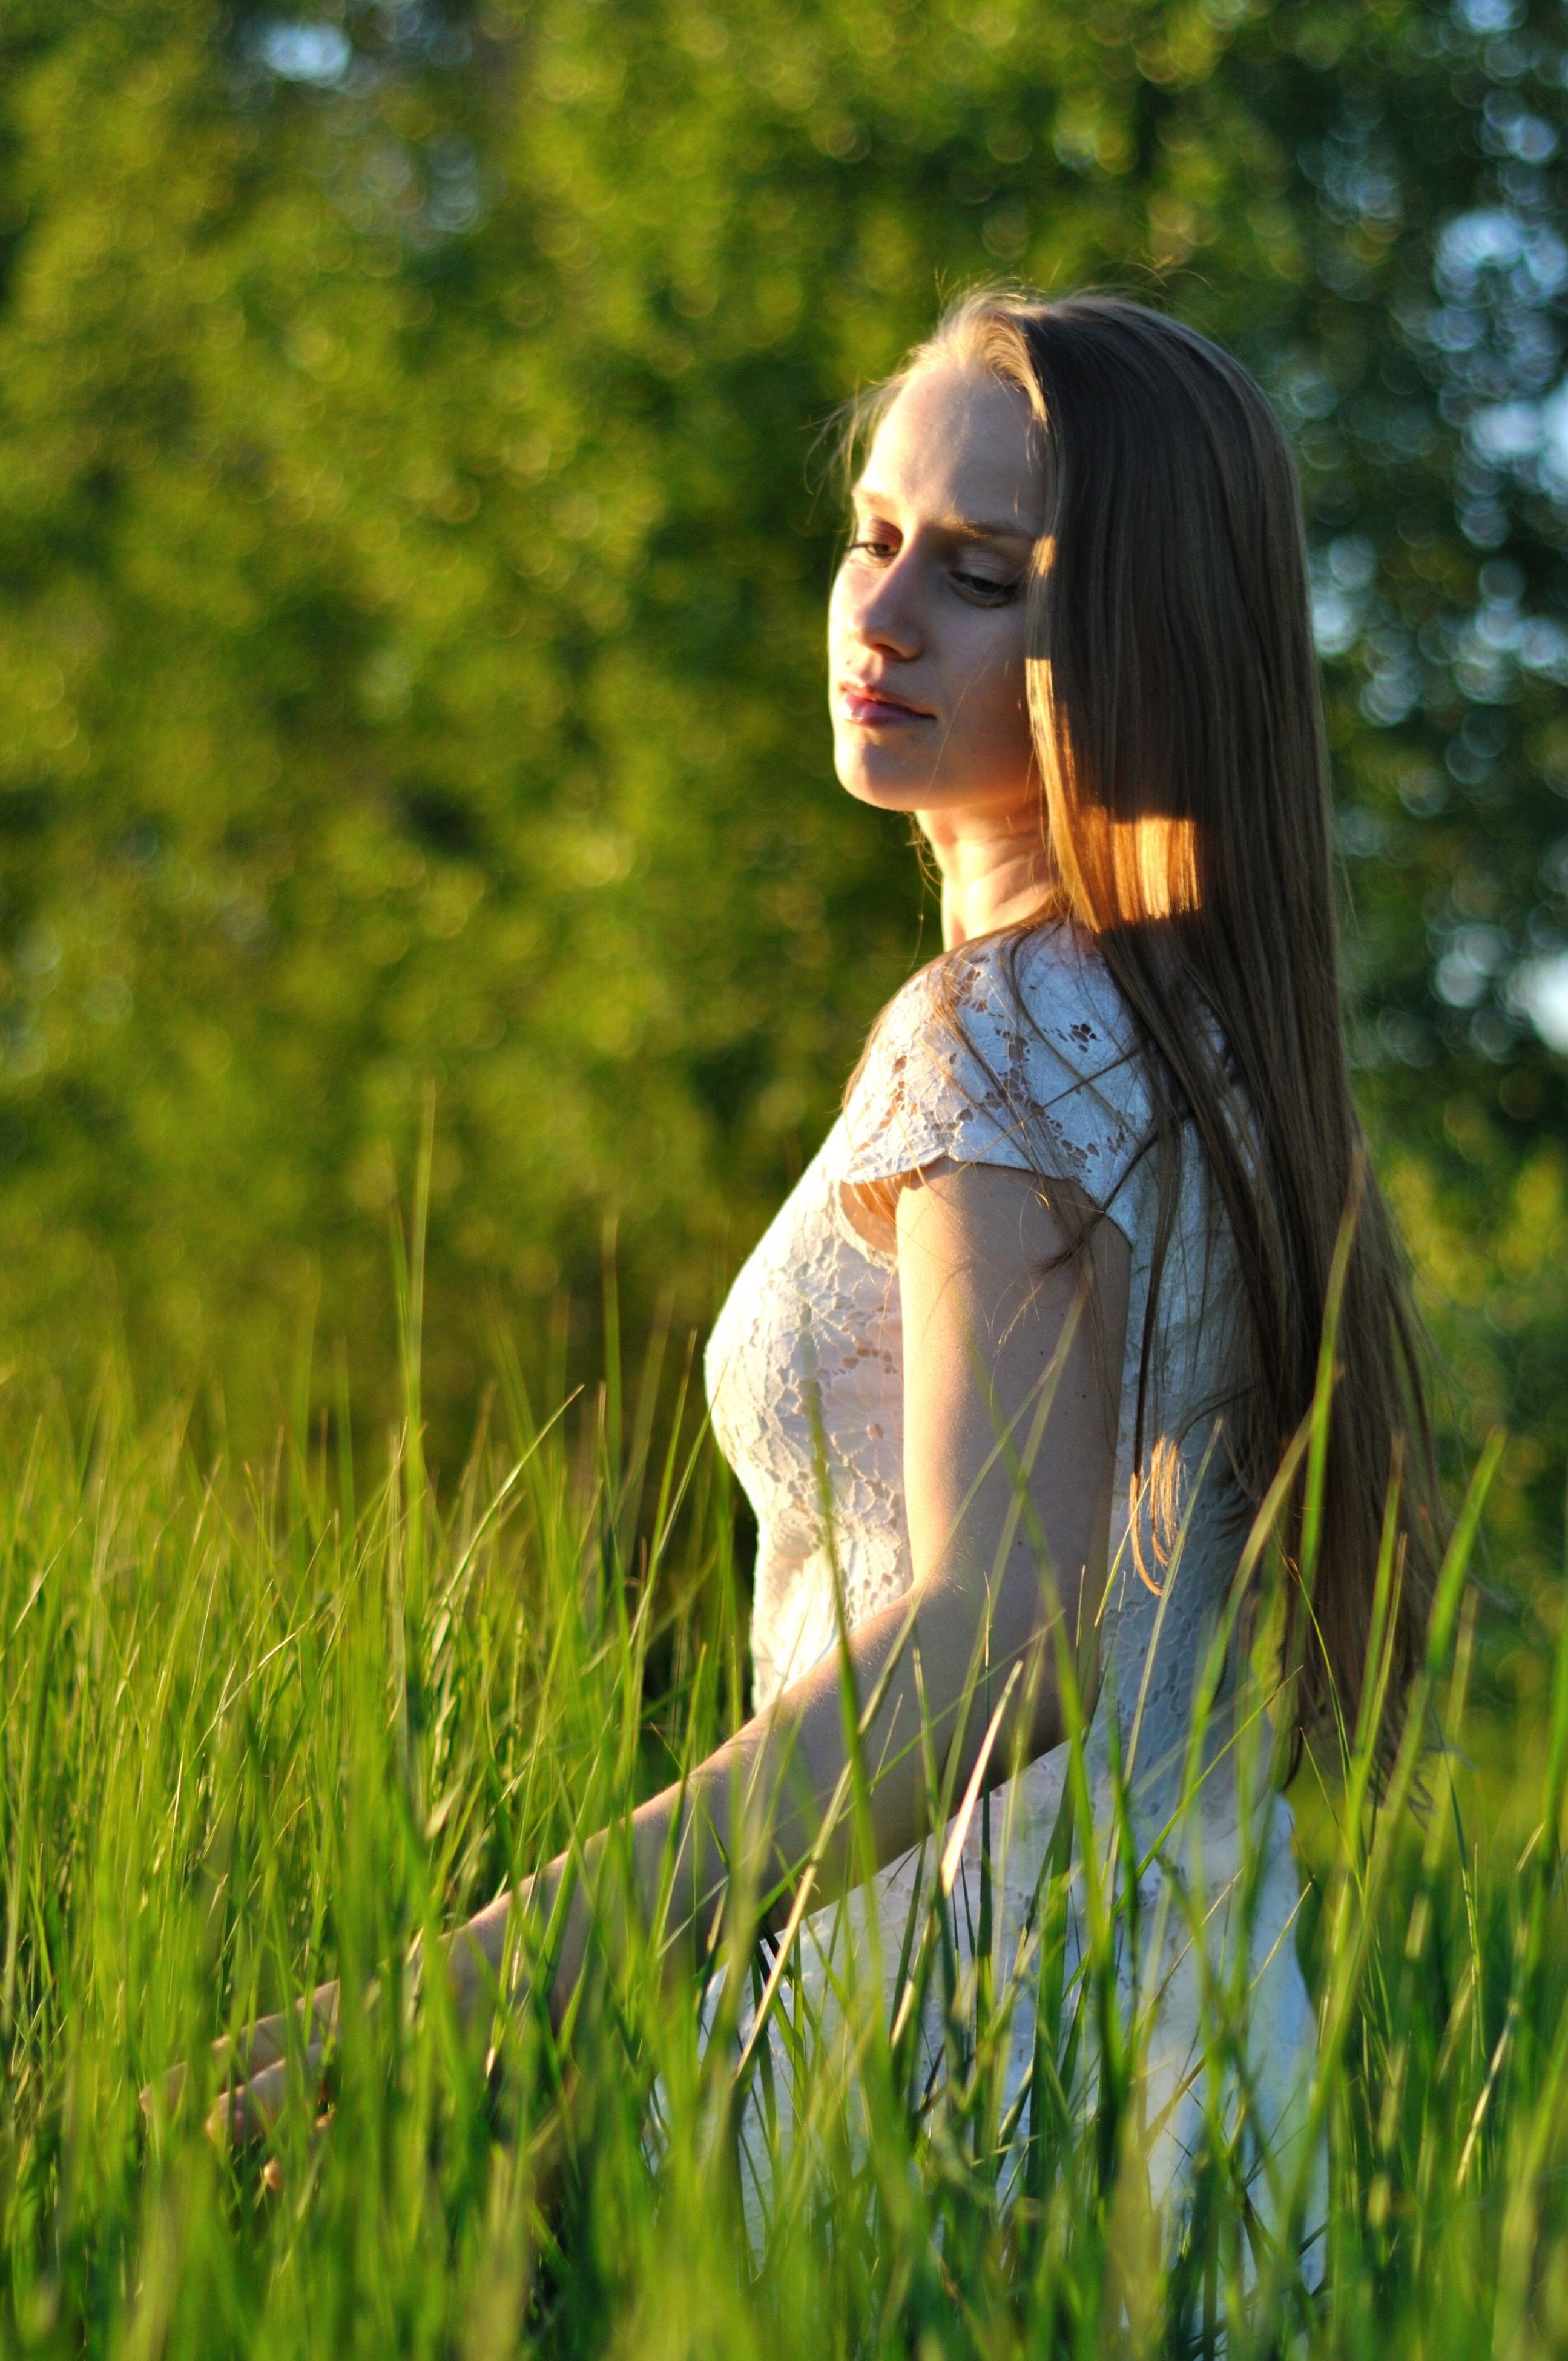 person, young adult, lifestyles, young women, leisure activity, focus on foreground, grass, long hair, casual clothing, three quarter length, side view, field, standing, contemplation, waist up, looking away, nature